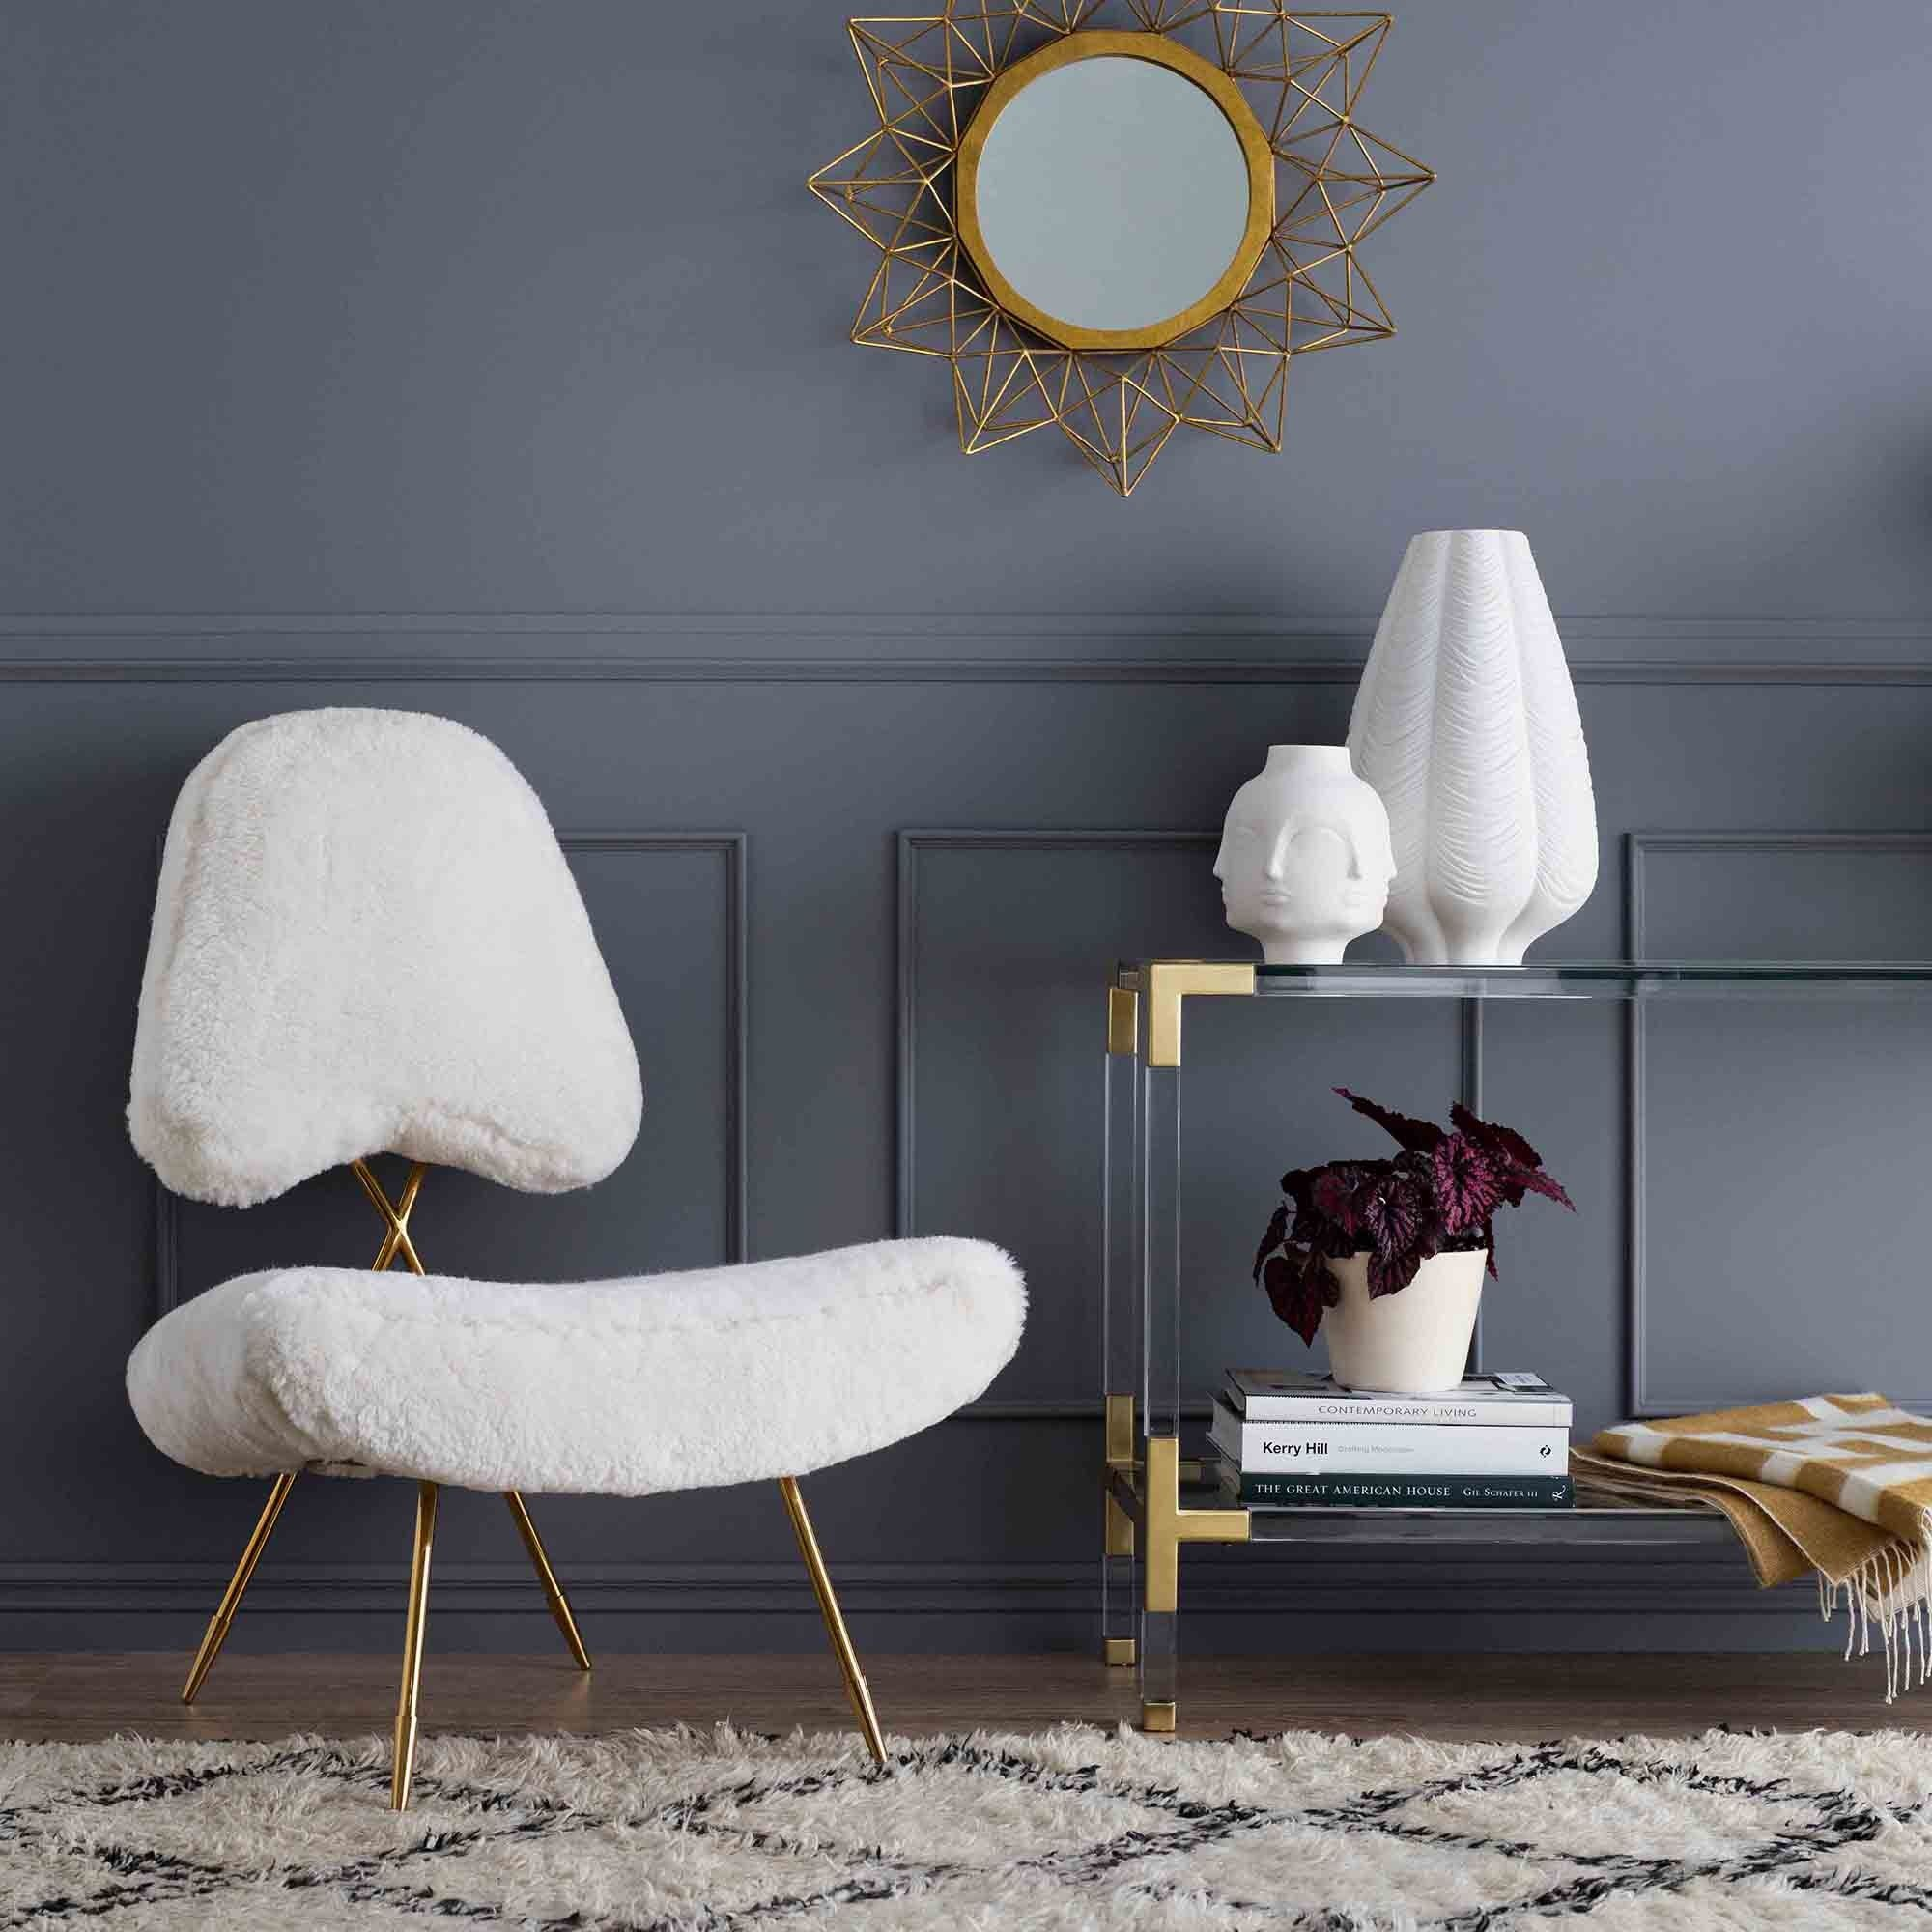 Jonathan Adler minimalist lounge chair with glamourous details and comfort-minded form.